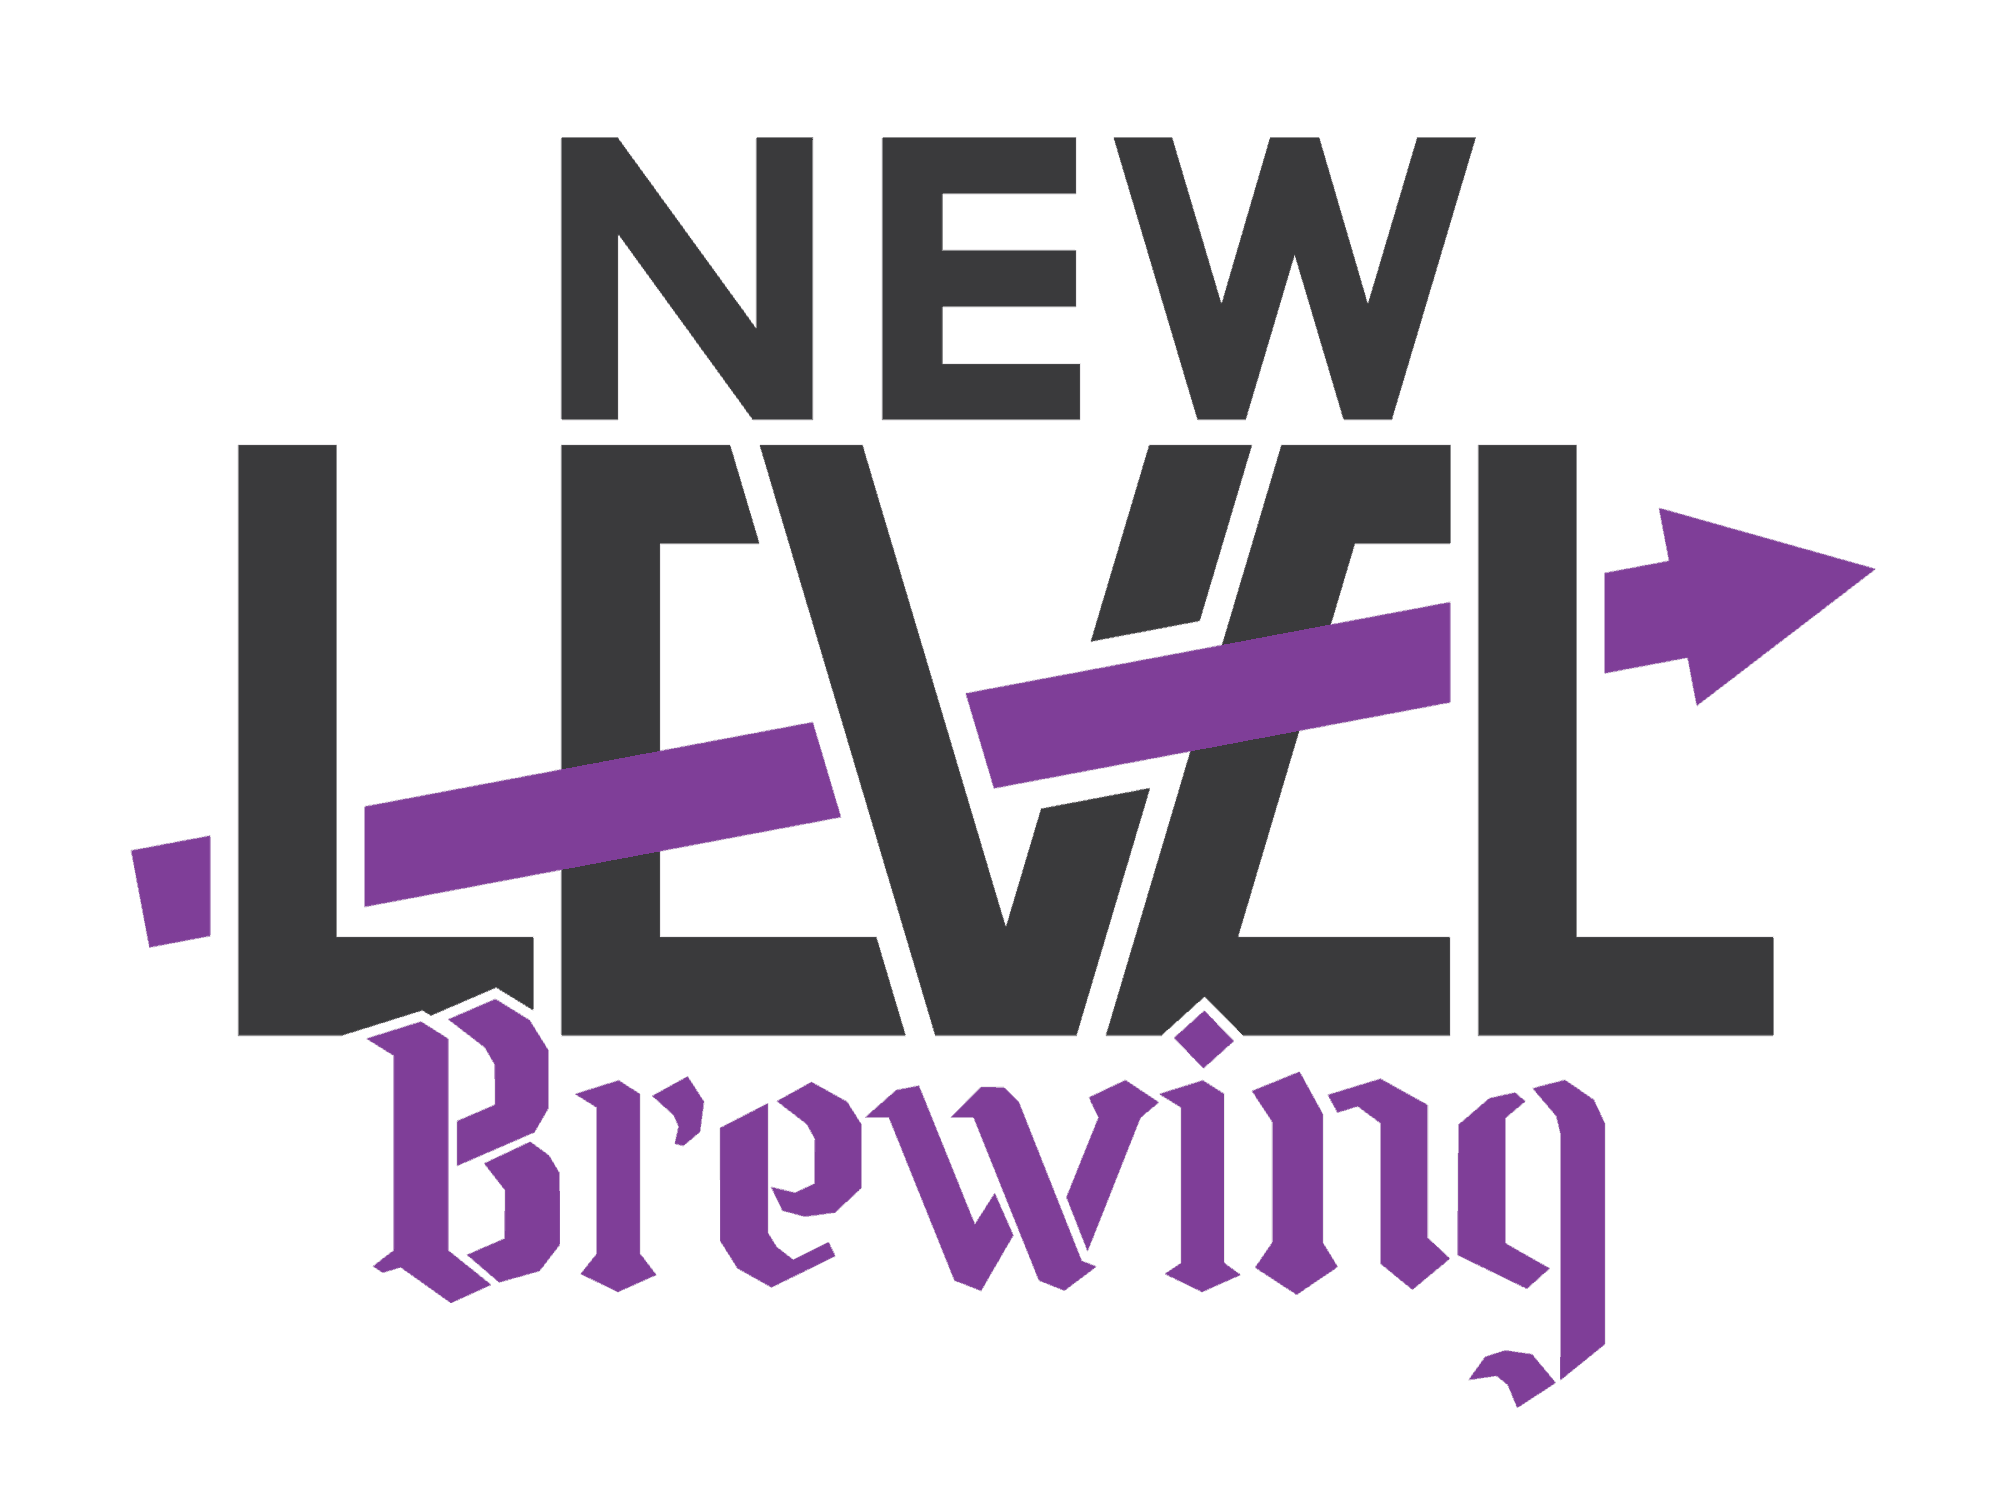 NEW LEVEL BREWING   __________  The  Haze Lord  is BACK! Enjoy this EPIC  IPA  with  $1  from each glass throughout the week going to support the  Calgary Outlink  Centre for Gender & Sexual Diversity.